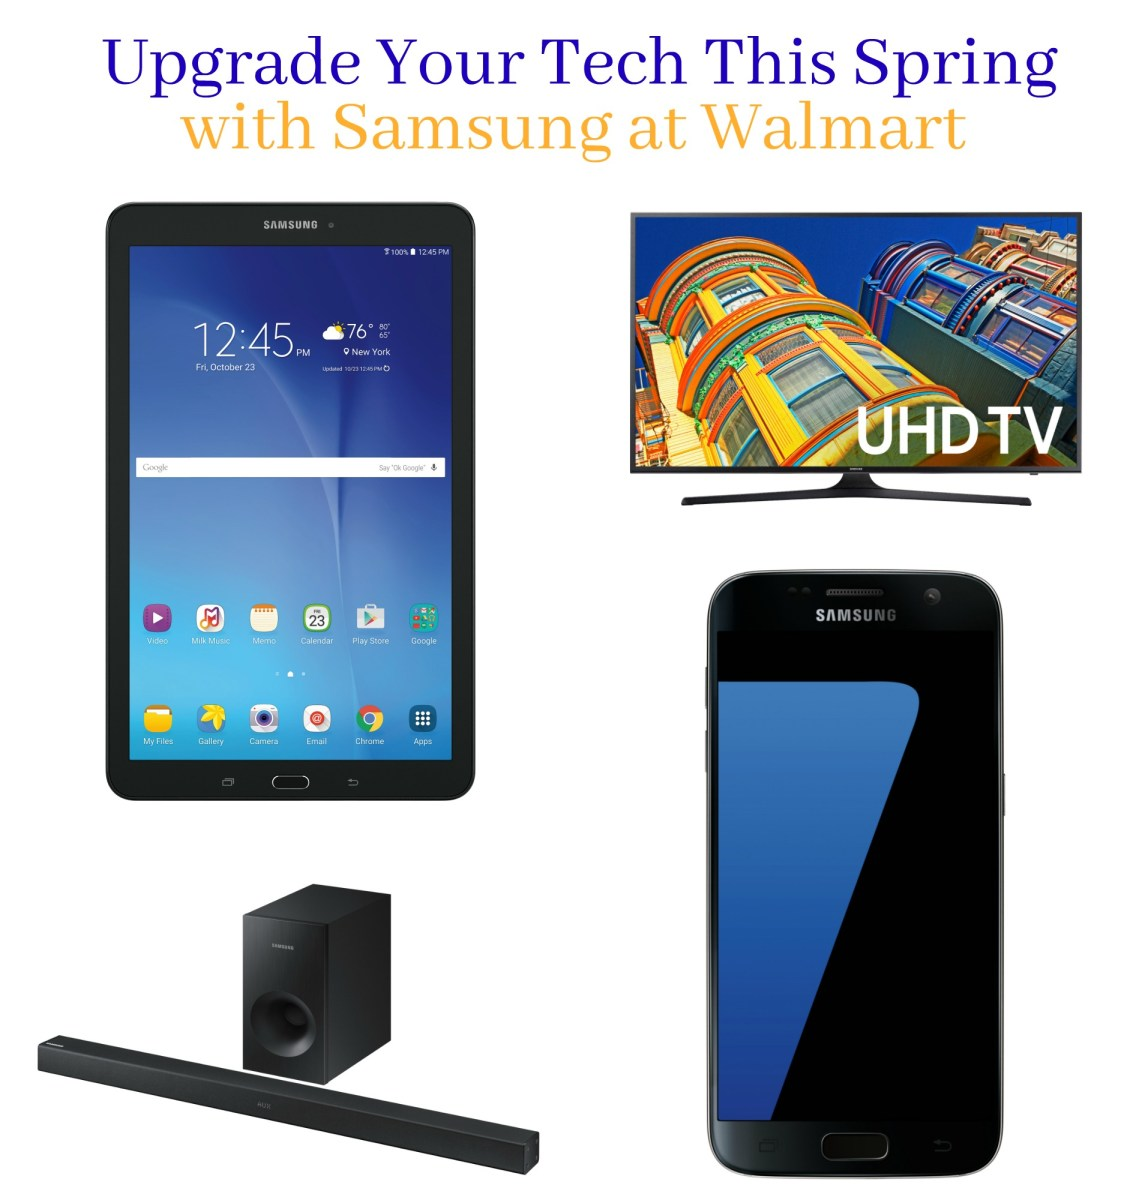 Upgrade Your Technology This Spring with a Little Help from Samsung at Walmart